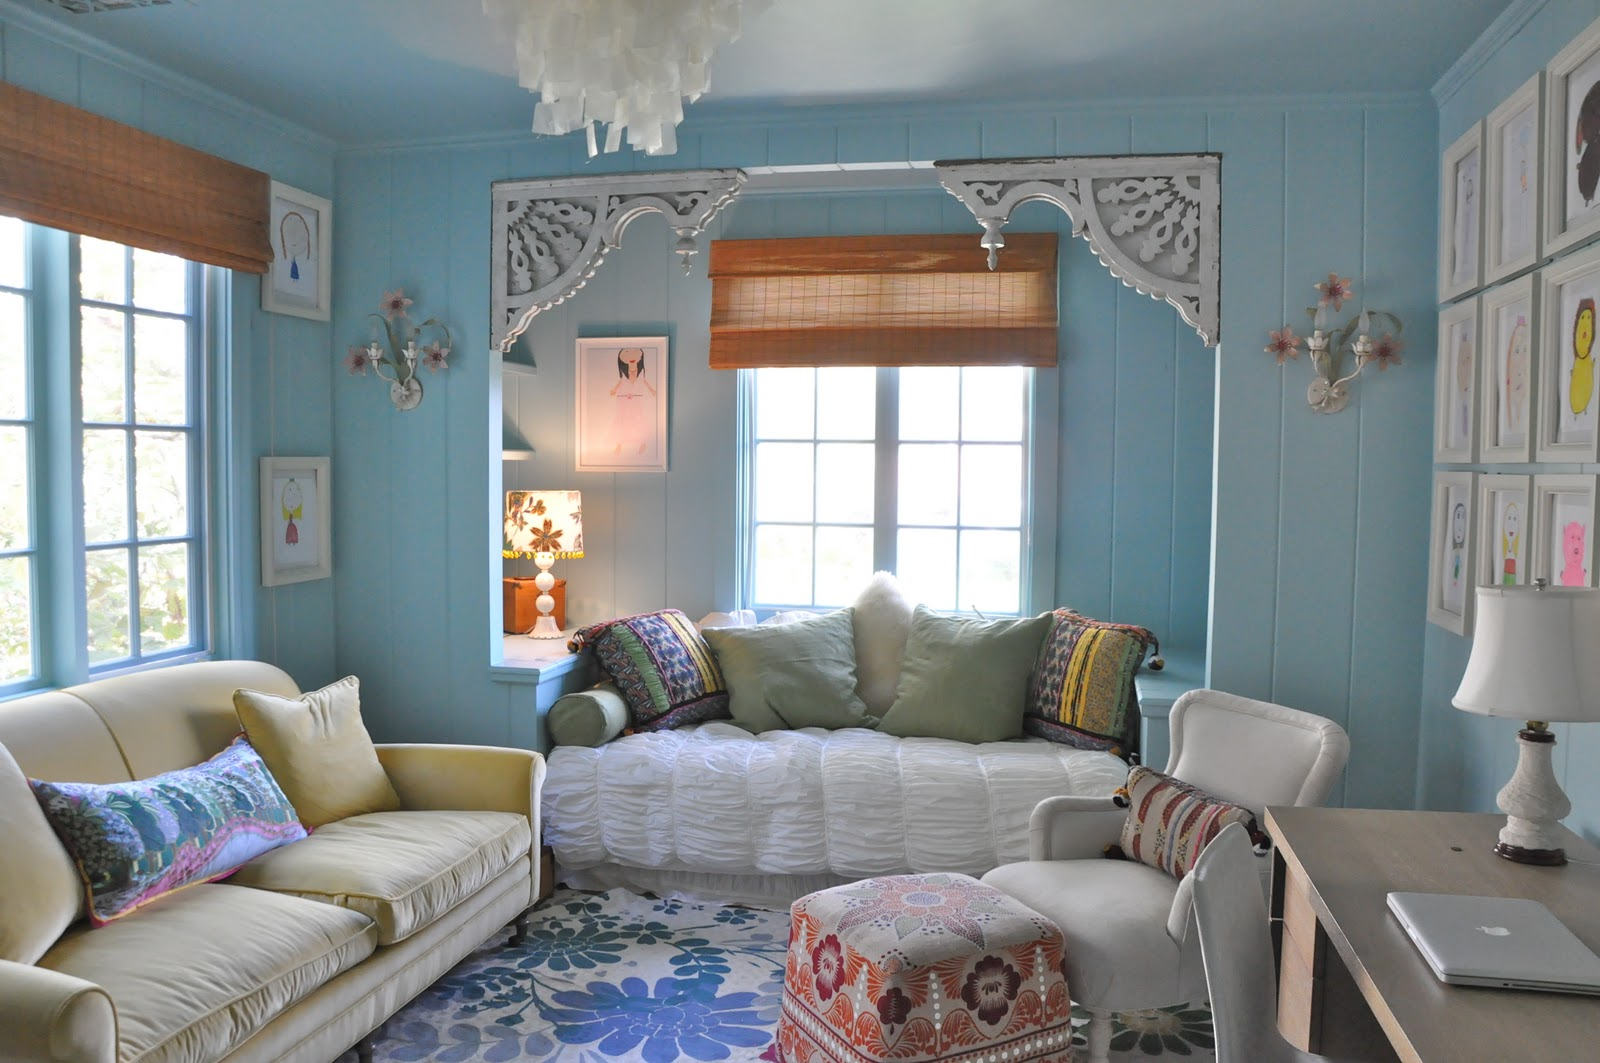 10 Amazing Kids Room Ideas: A 10 Year Old's Room By Giannetti Designs...(Via Made By